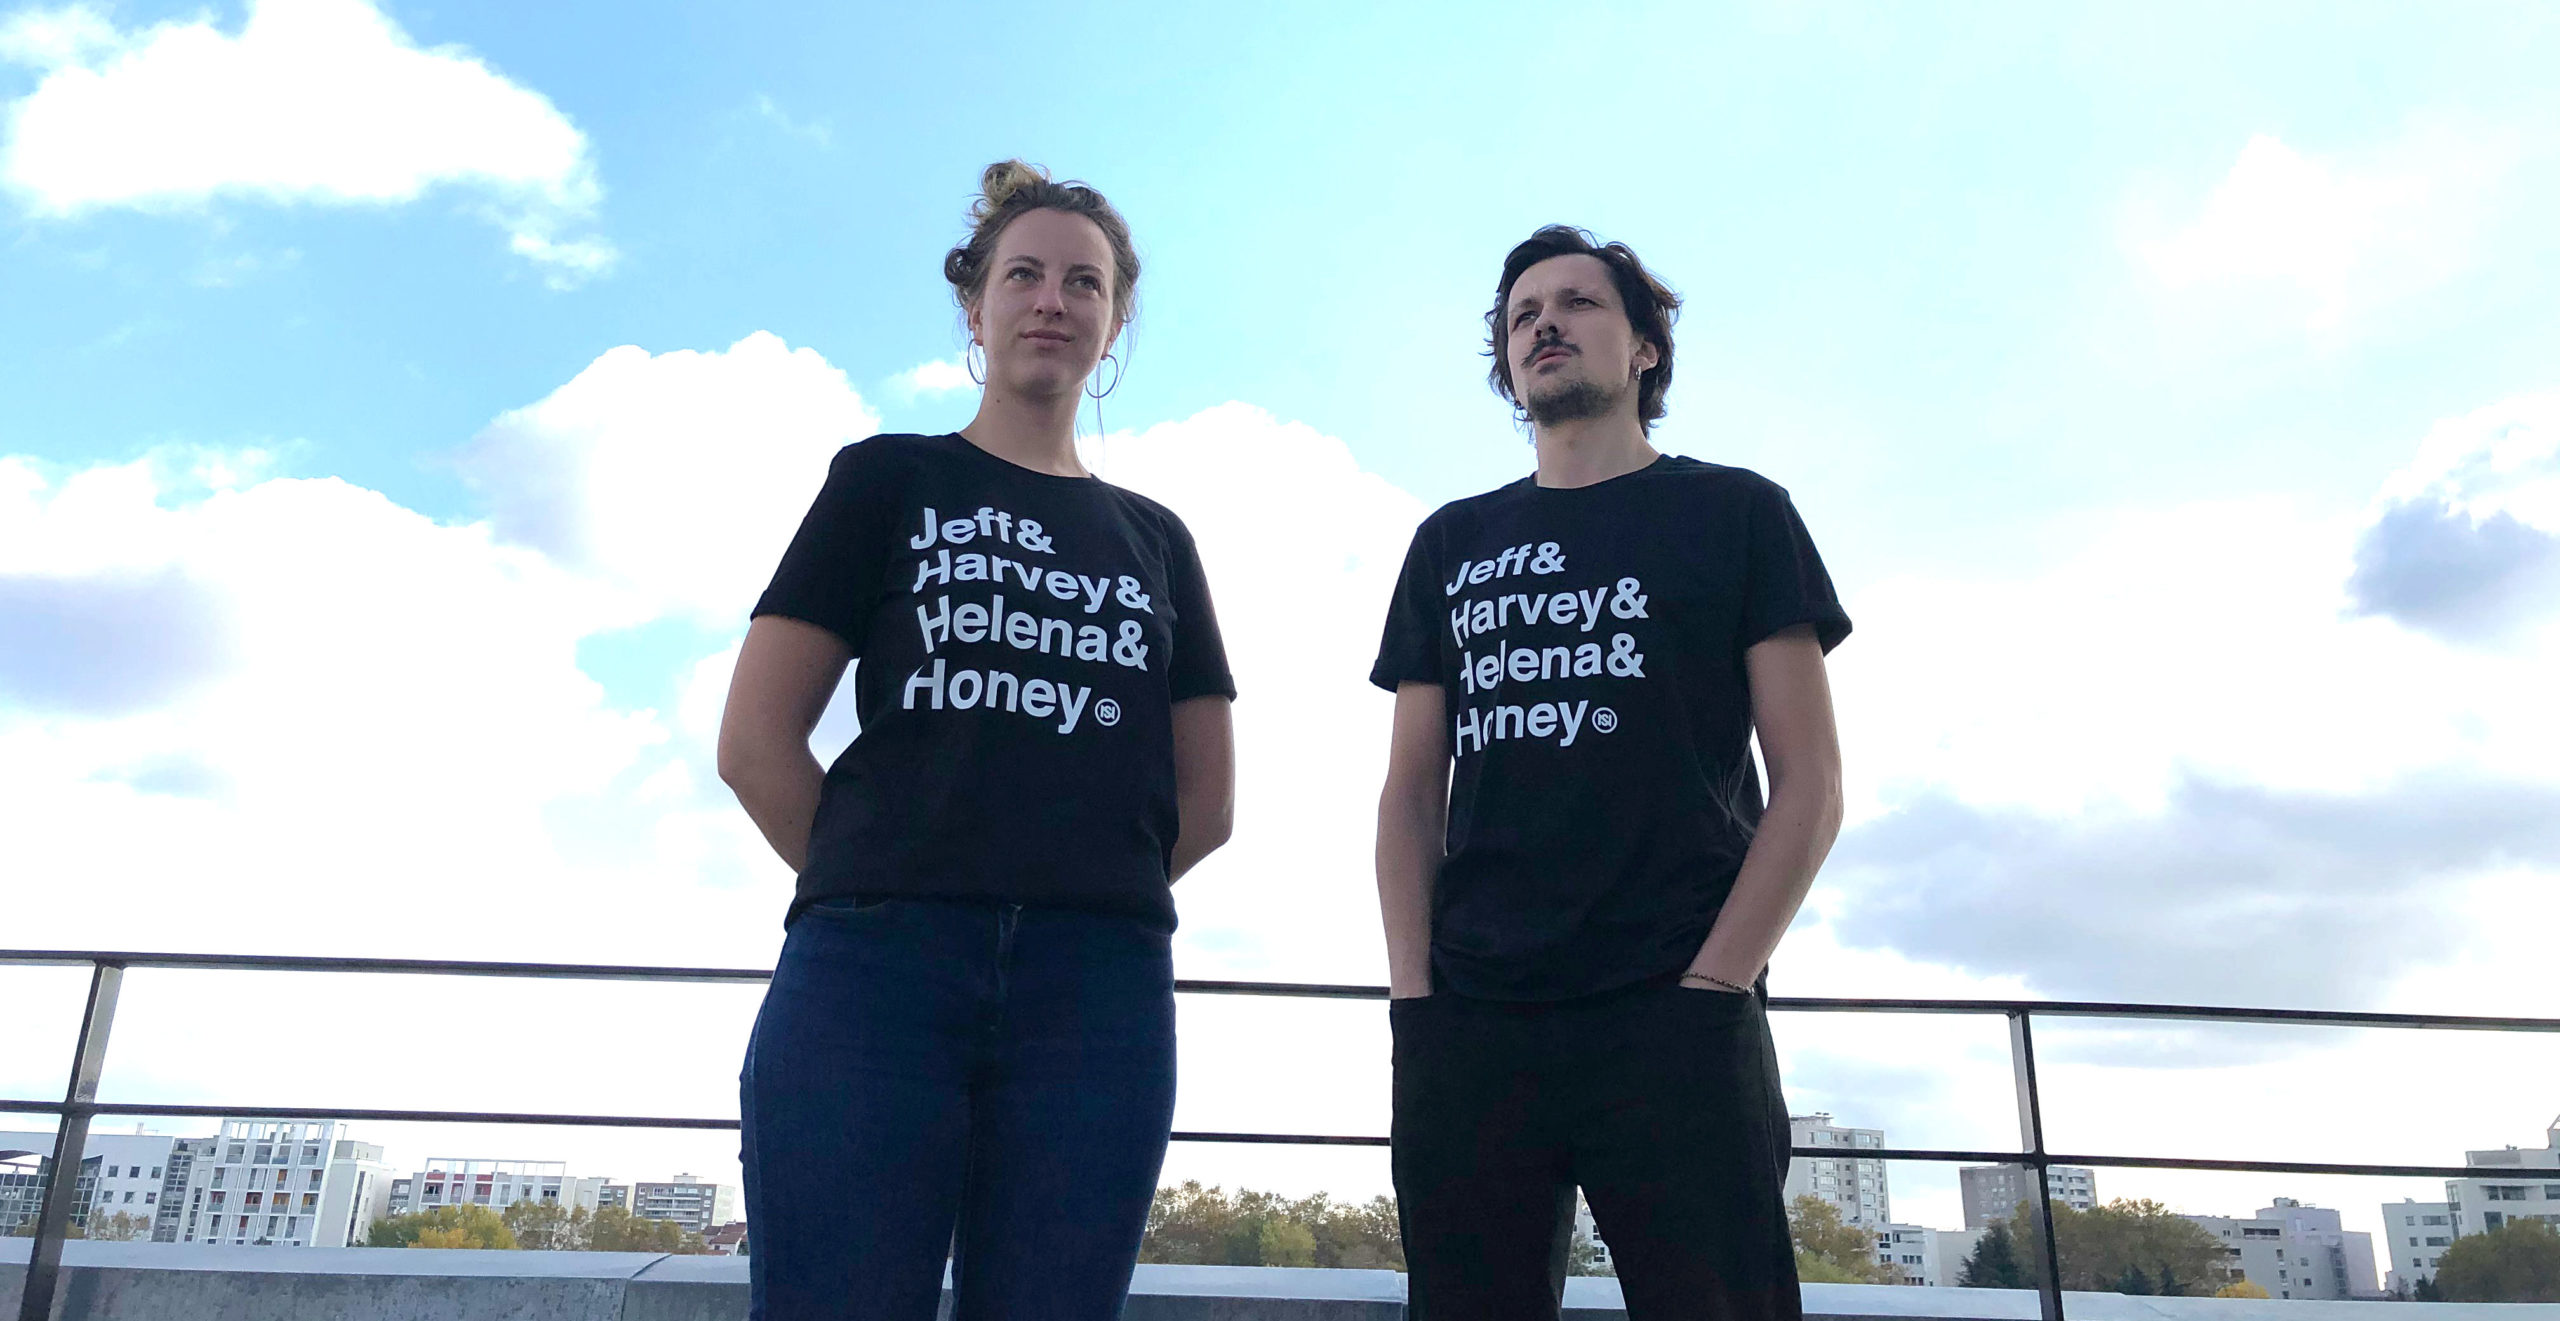 Tee-shirts Curators Nuits sonores 2020